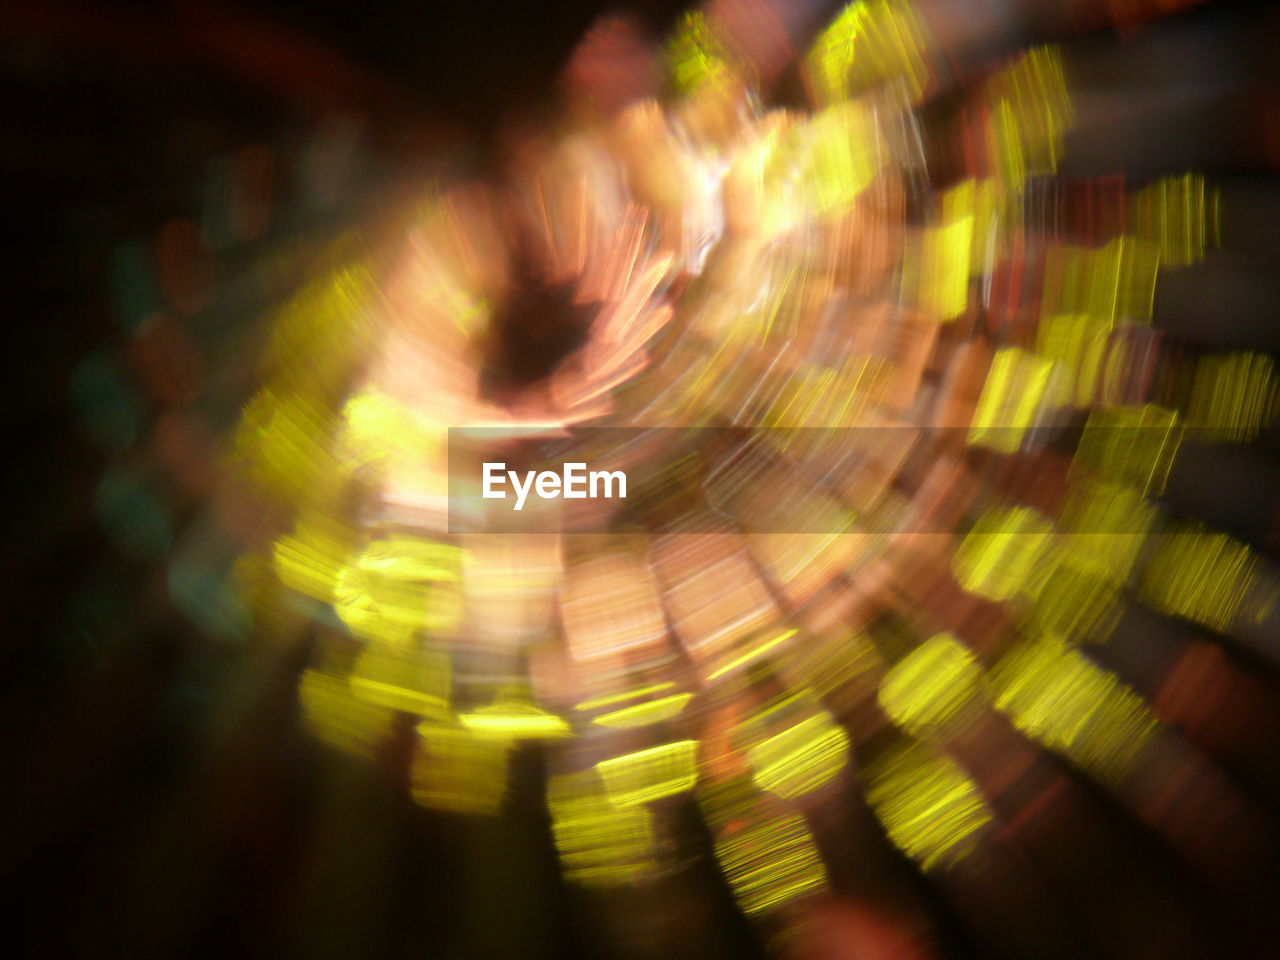 full frame, pattern, abstract, no people, backgrounds, selective focus, blurred motion, close-up, defocused, multi colored, night, motion, illuminated, glowing, light - natural phenomenon, nature, indoors, beauty in nature, long exposure